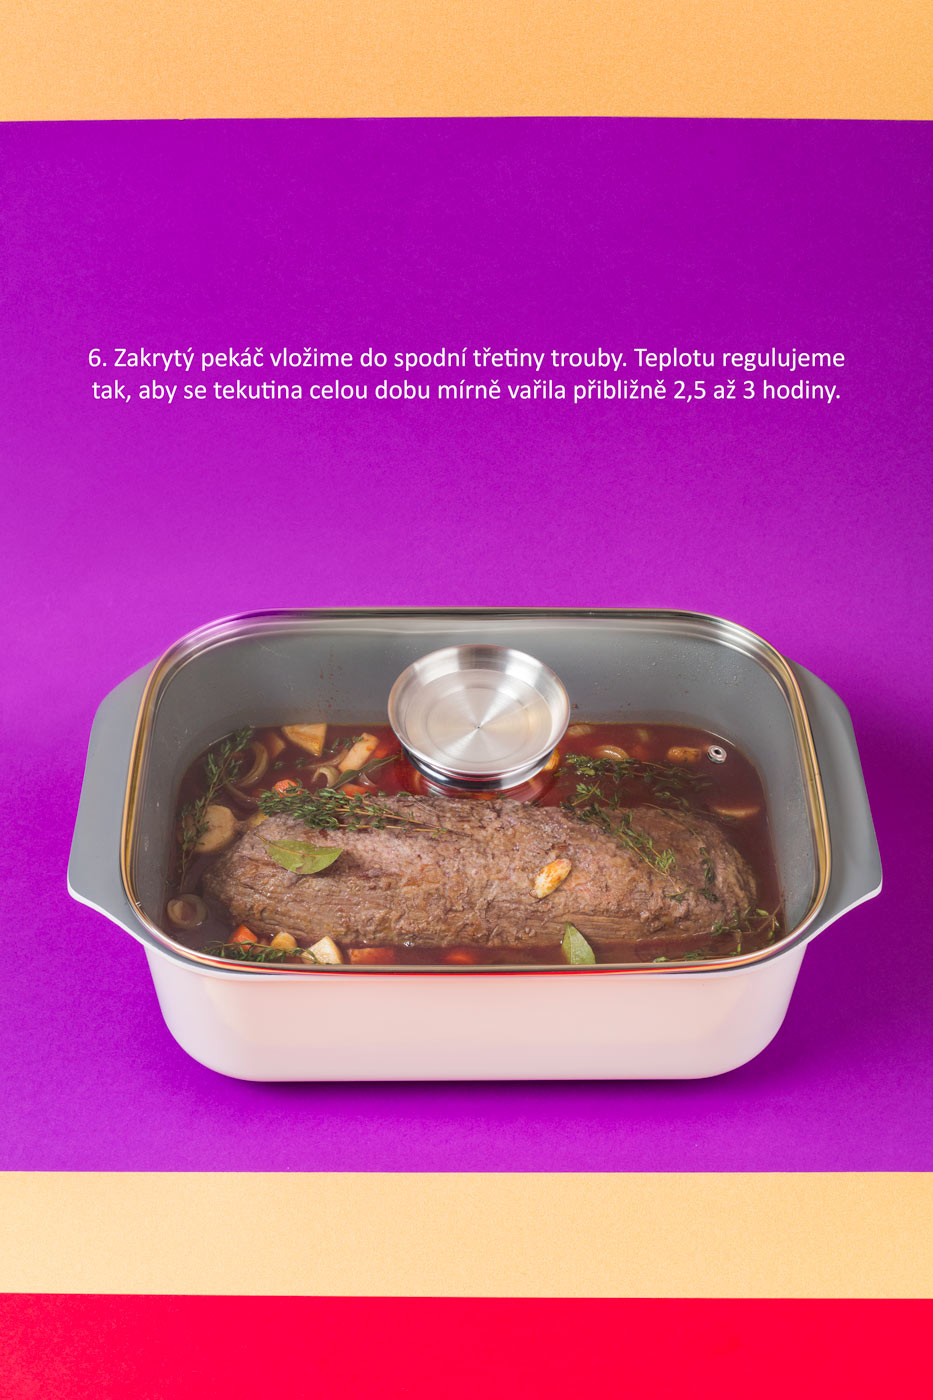 Recipe image of beef bourguignon, promoting the Lamart brand cookware